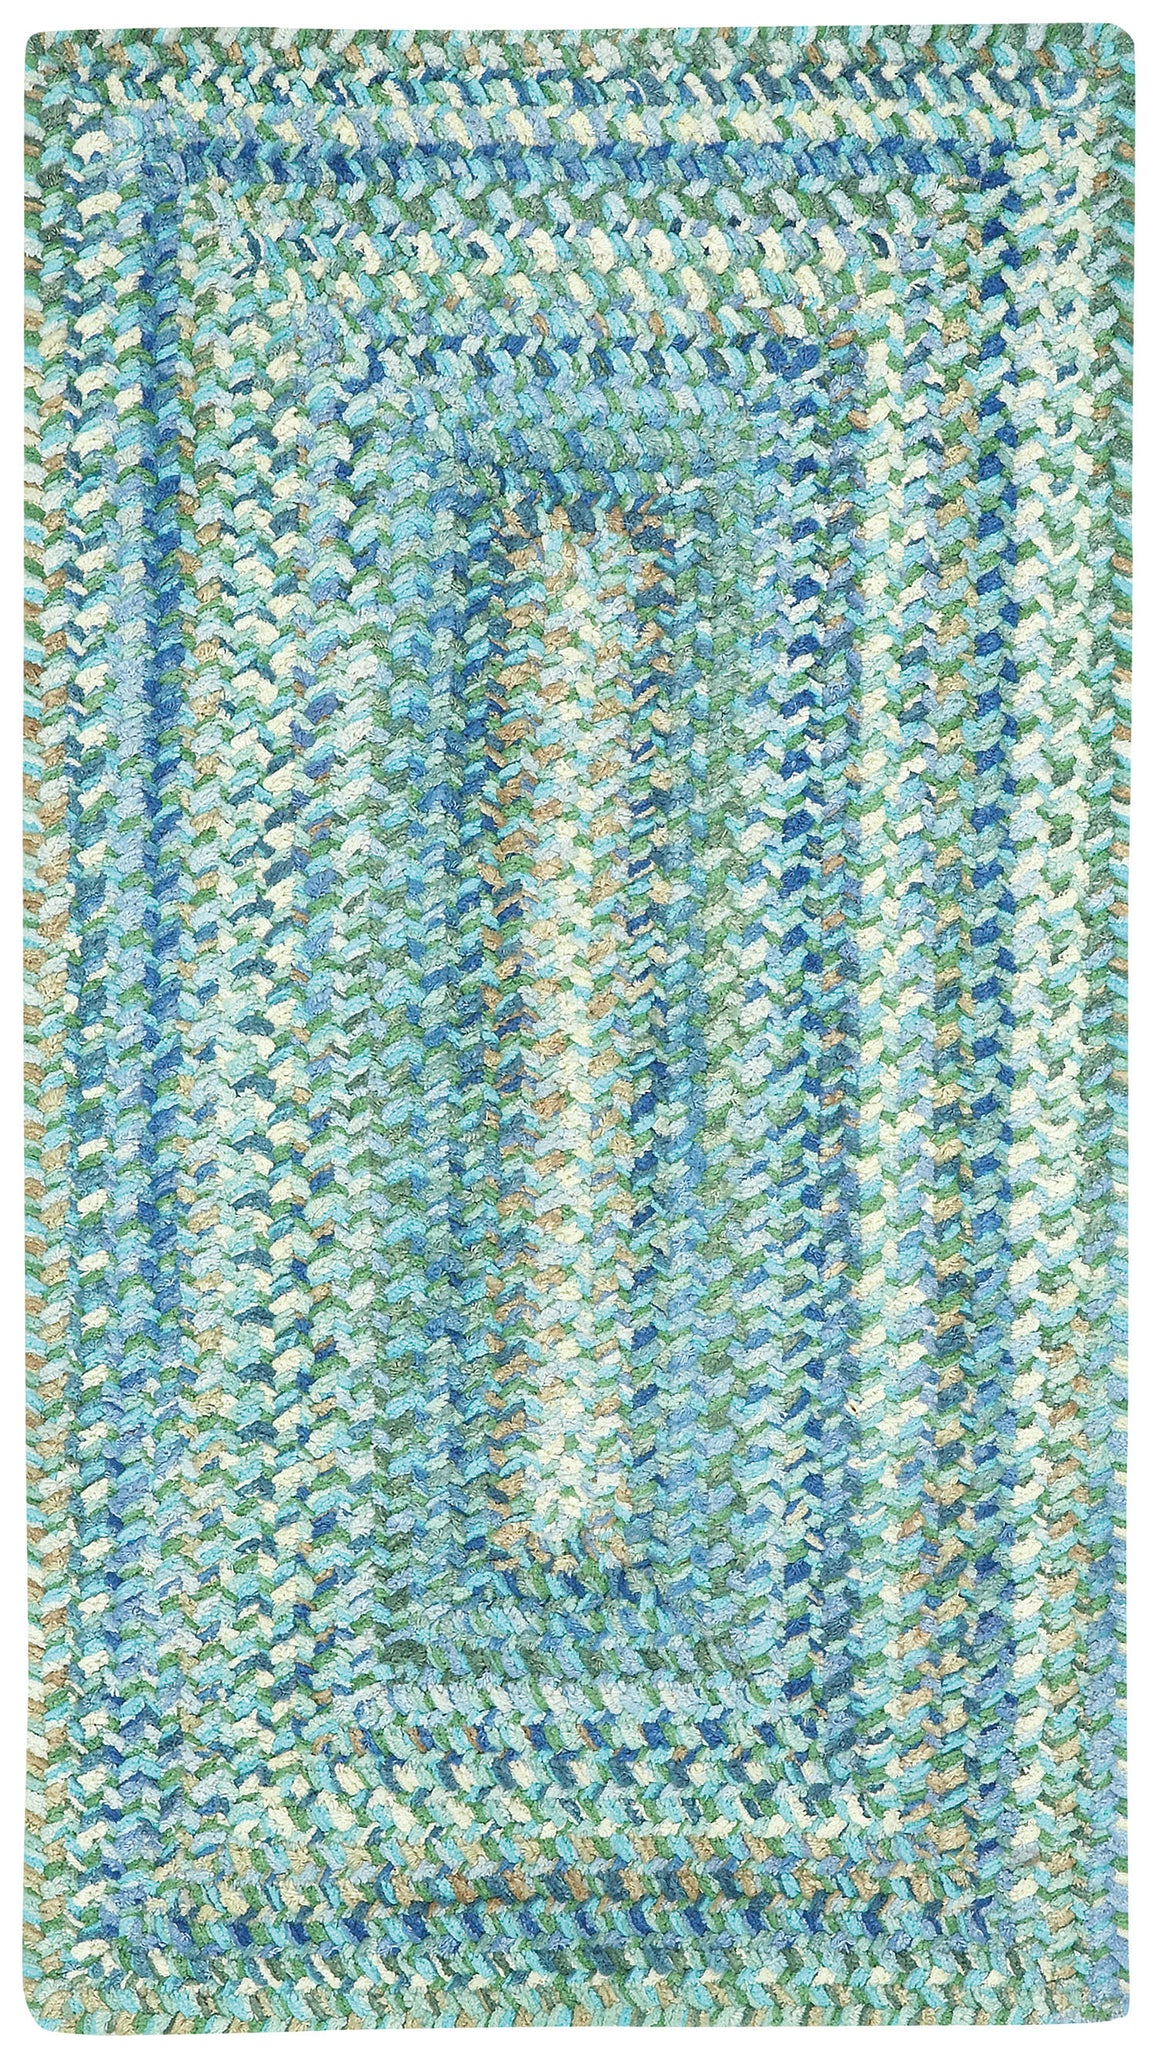 Capel Ocracoke 0425 Light Blue 425 Area Rug main image